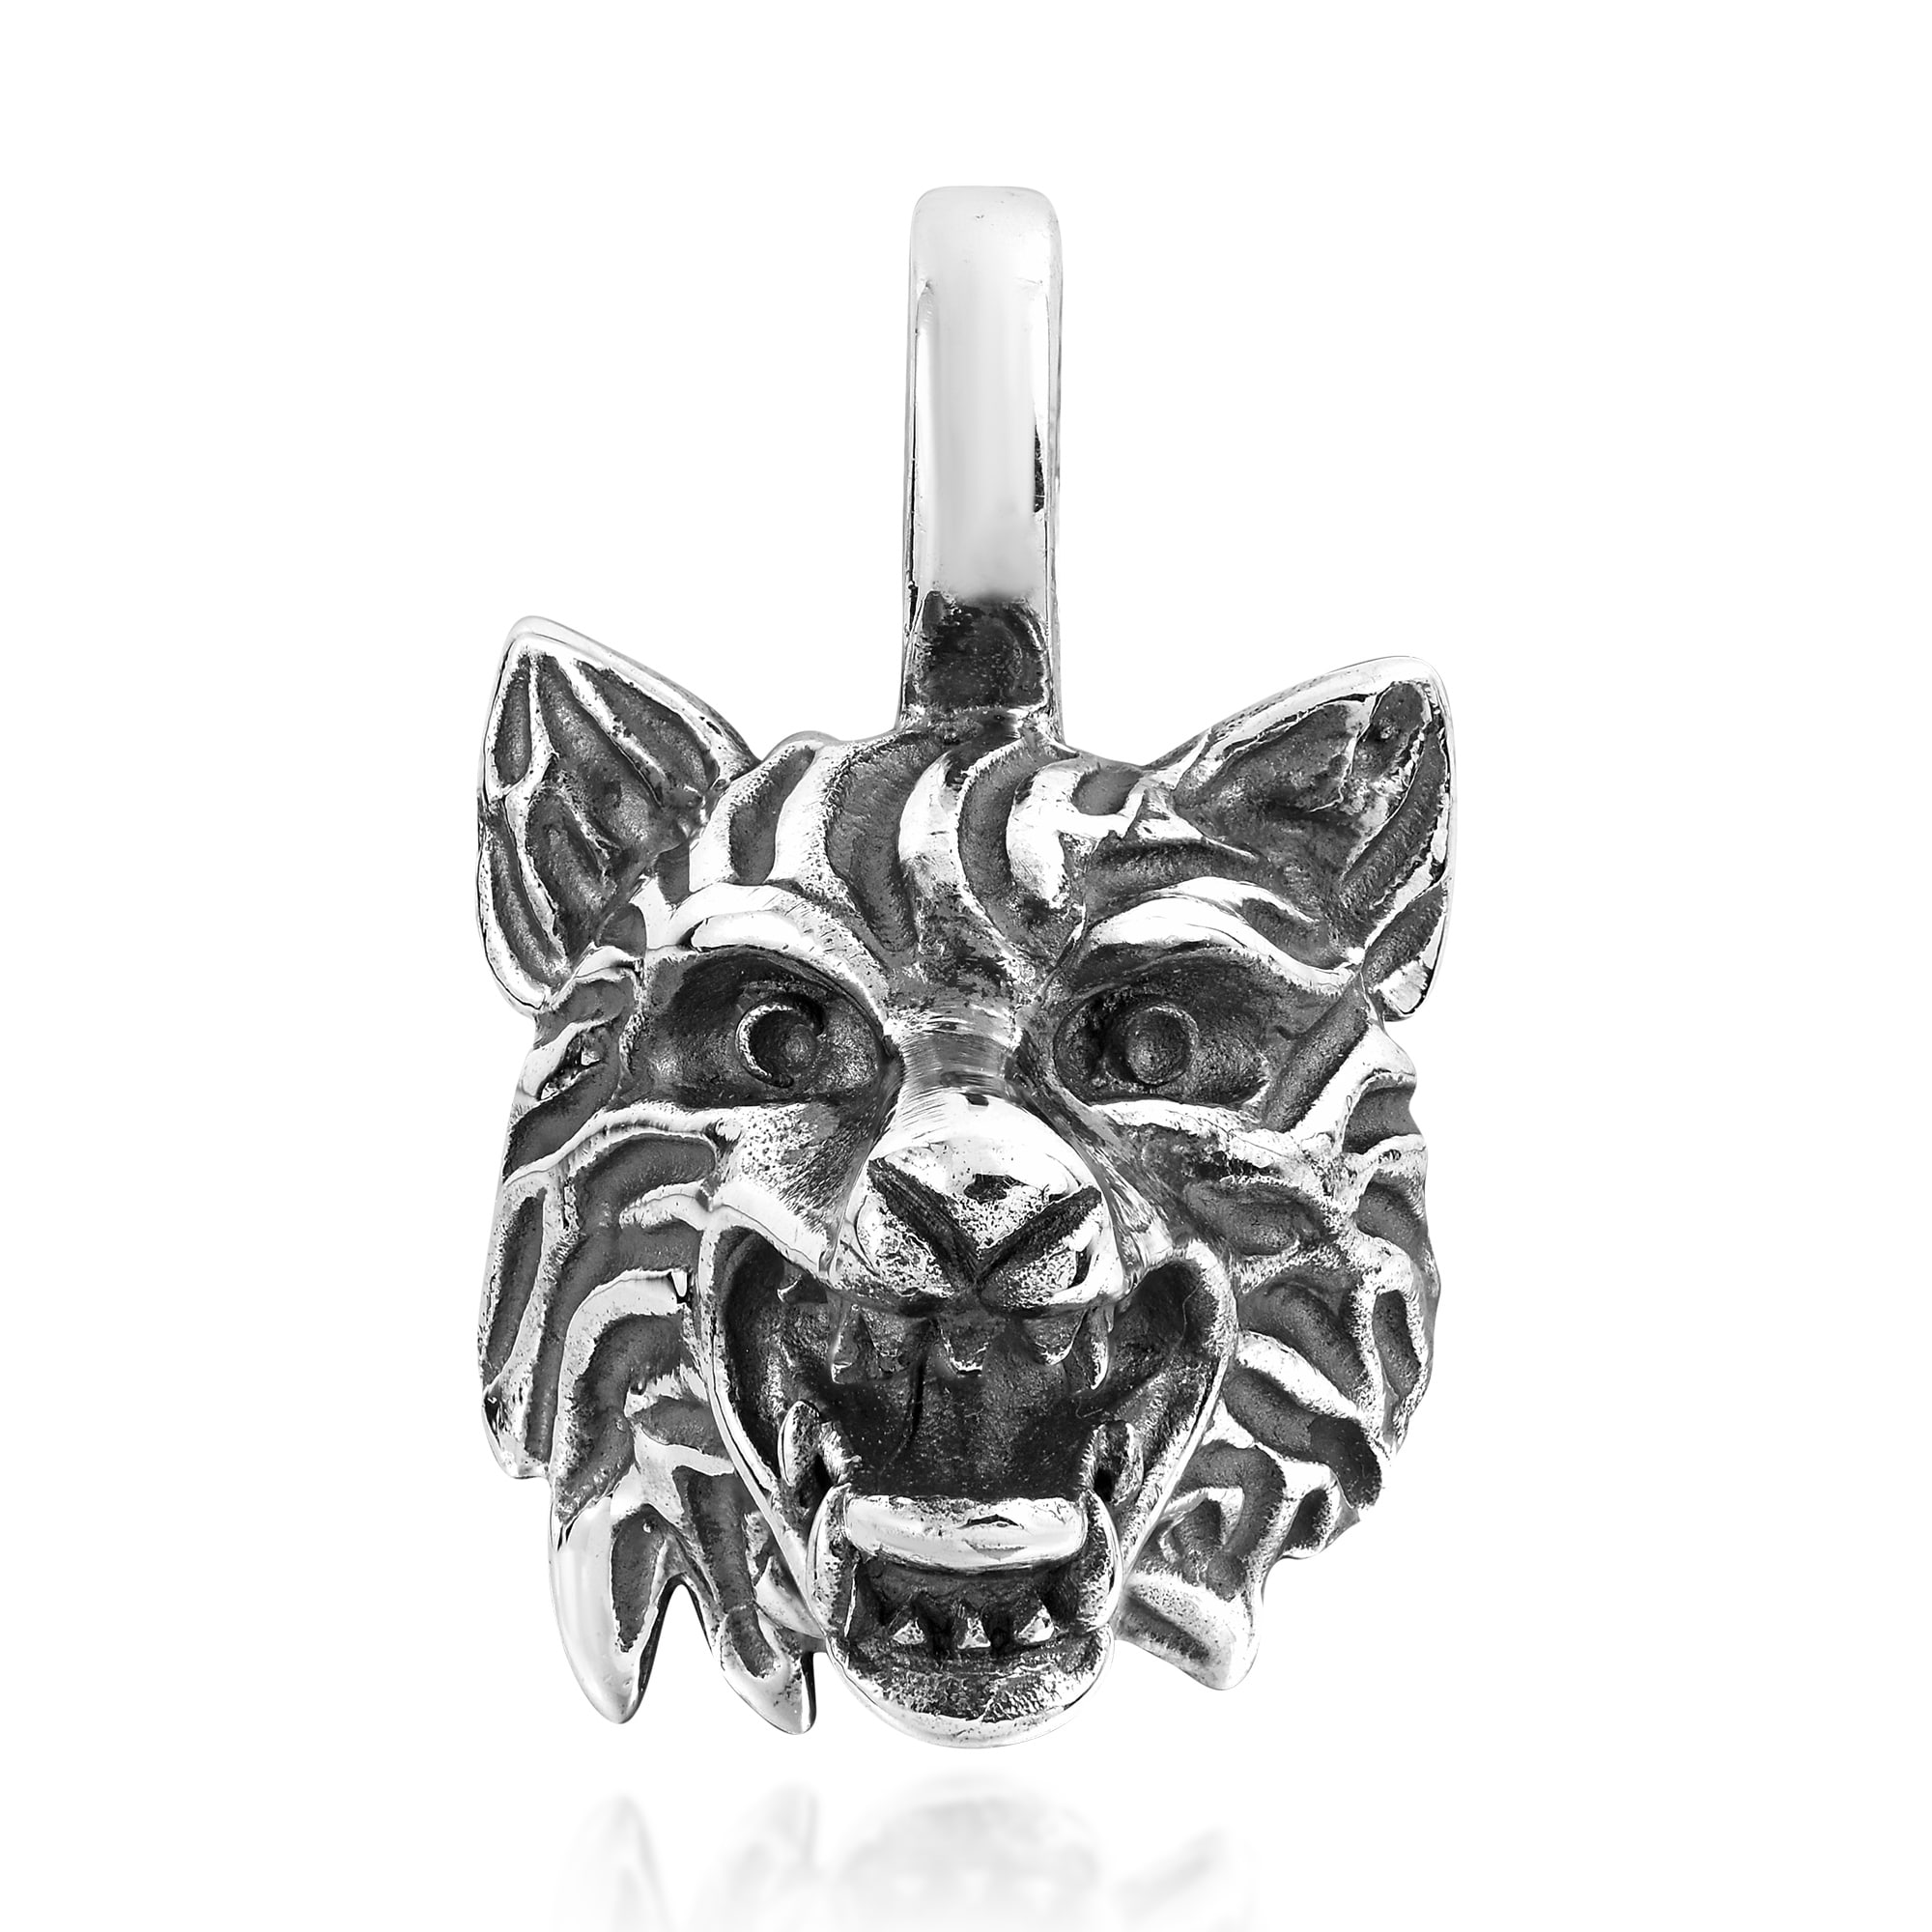 long pyrite elements gallery alexis normal bittar fox head pendant lyst jewelry necklace silver crystal wolf product phoenix dark